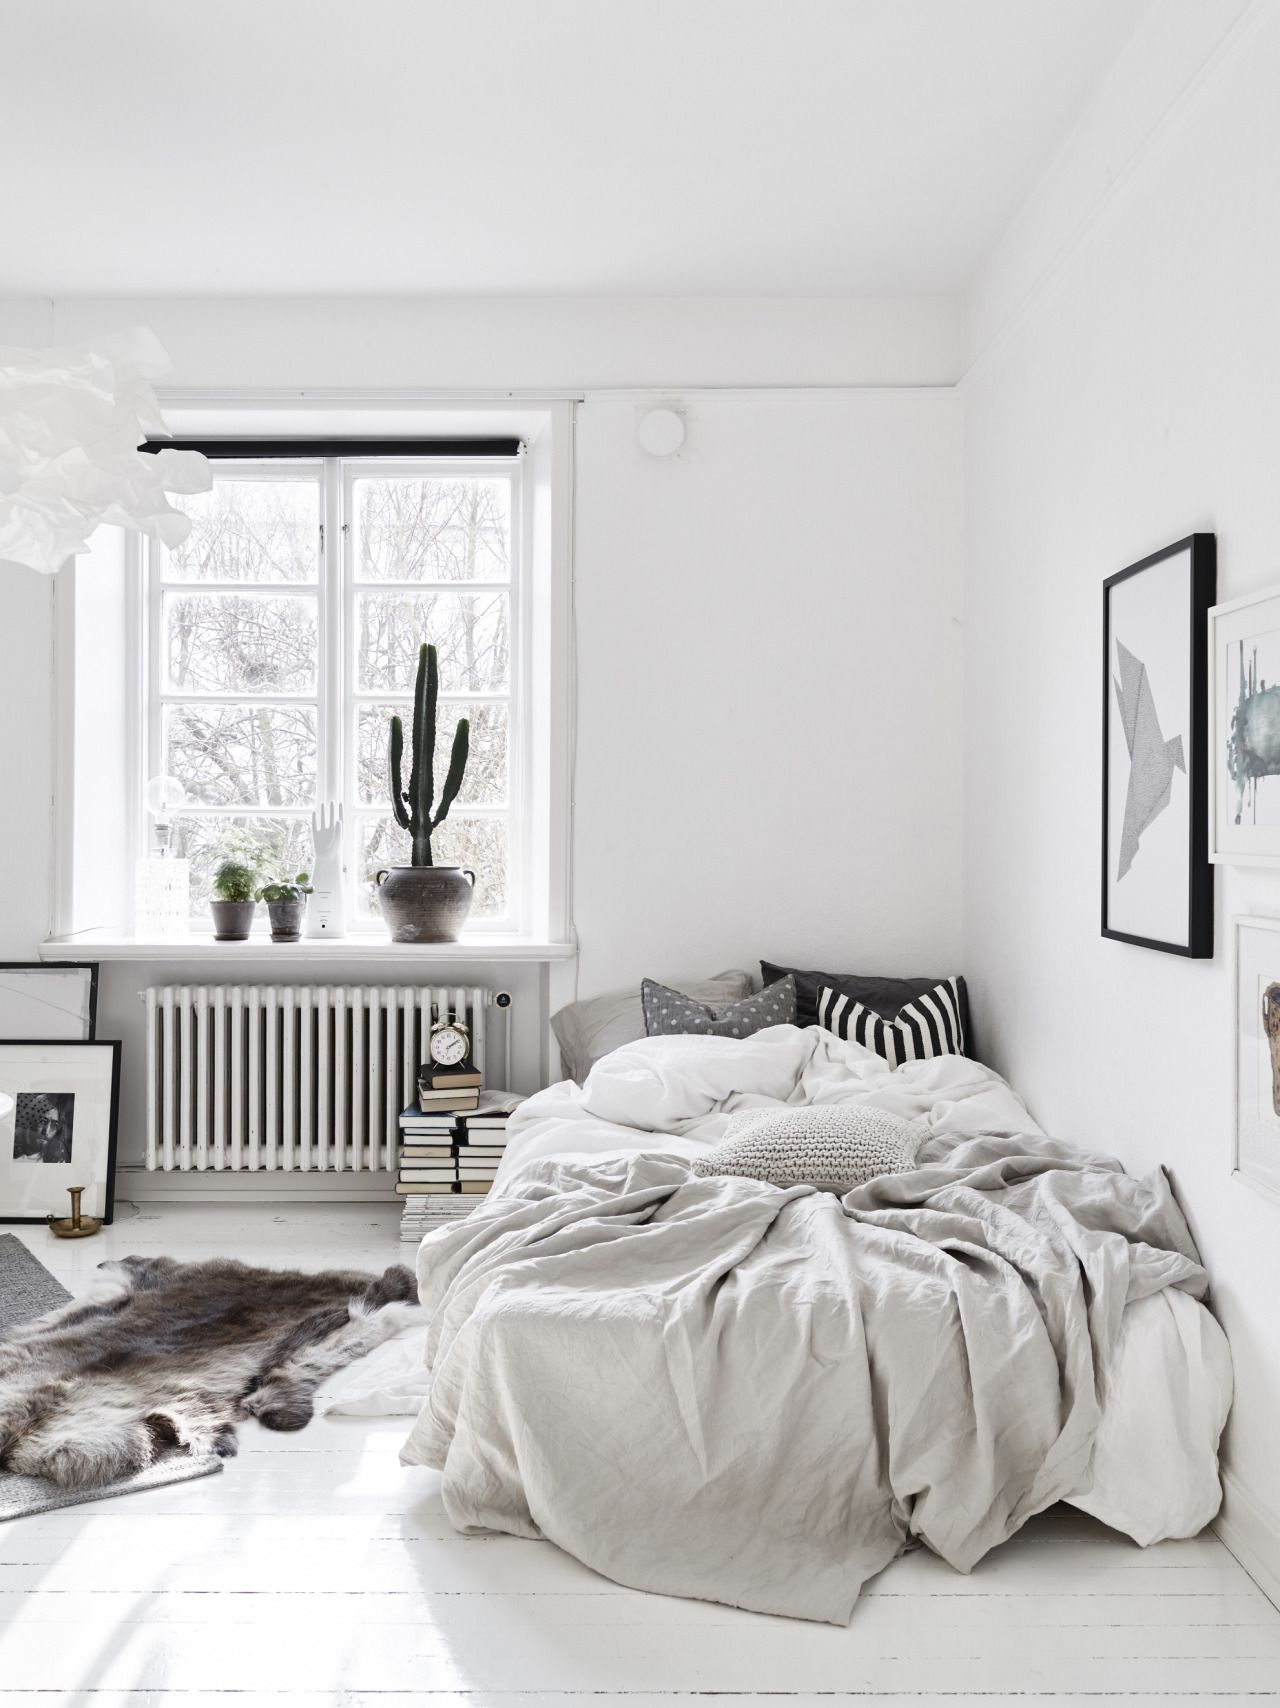 What A Wonderful Home Bedroom Interior Small Space Inspiration Student Apartment Great inspiration small bedroom